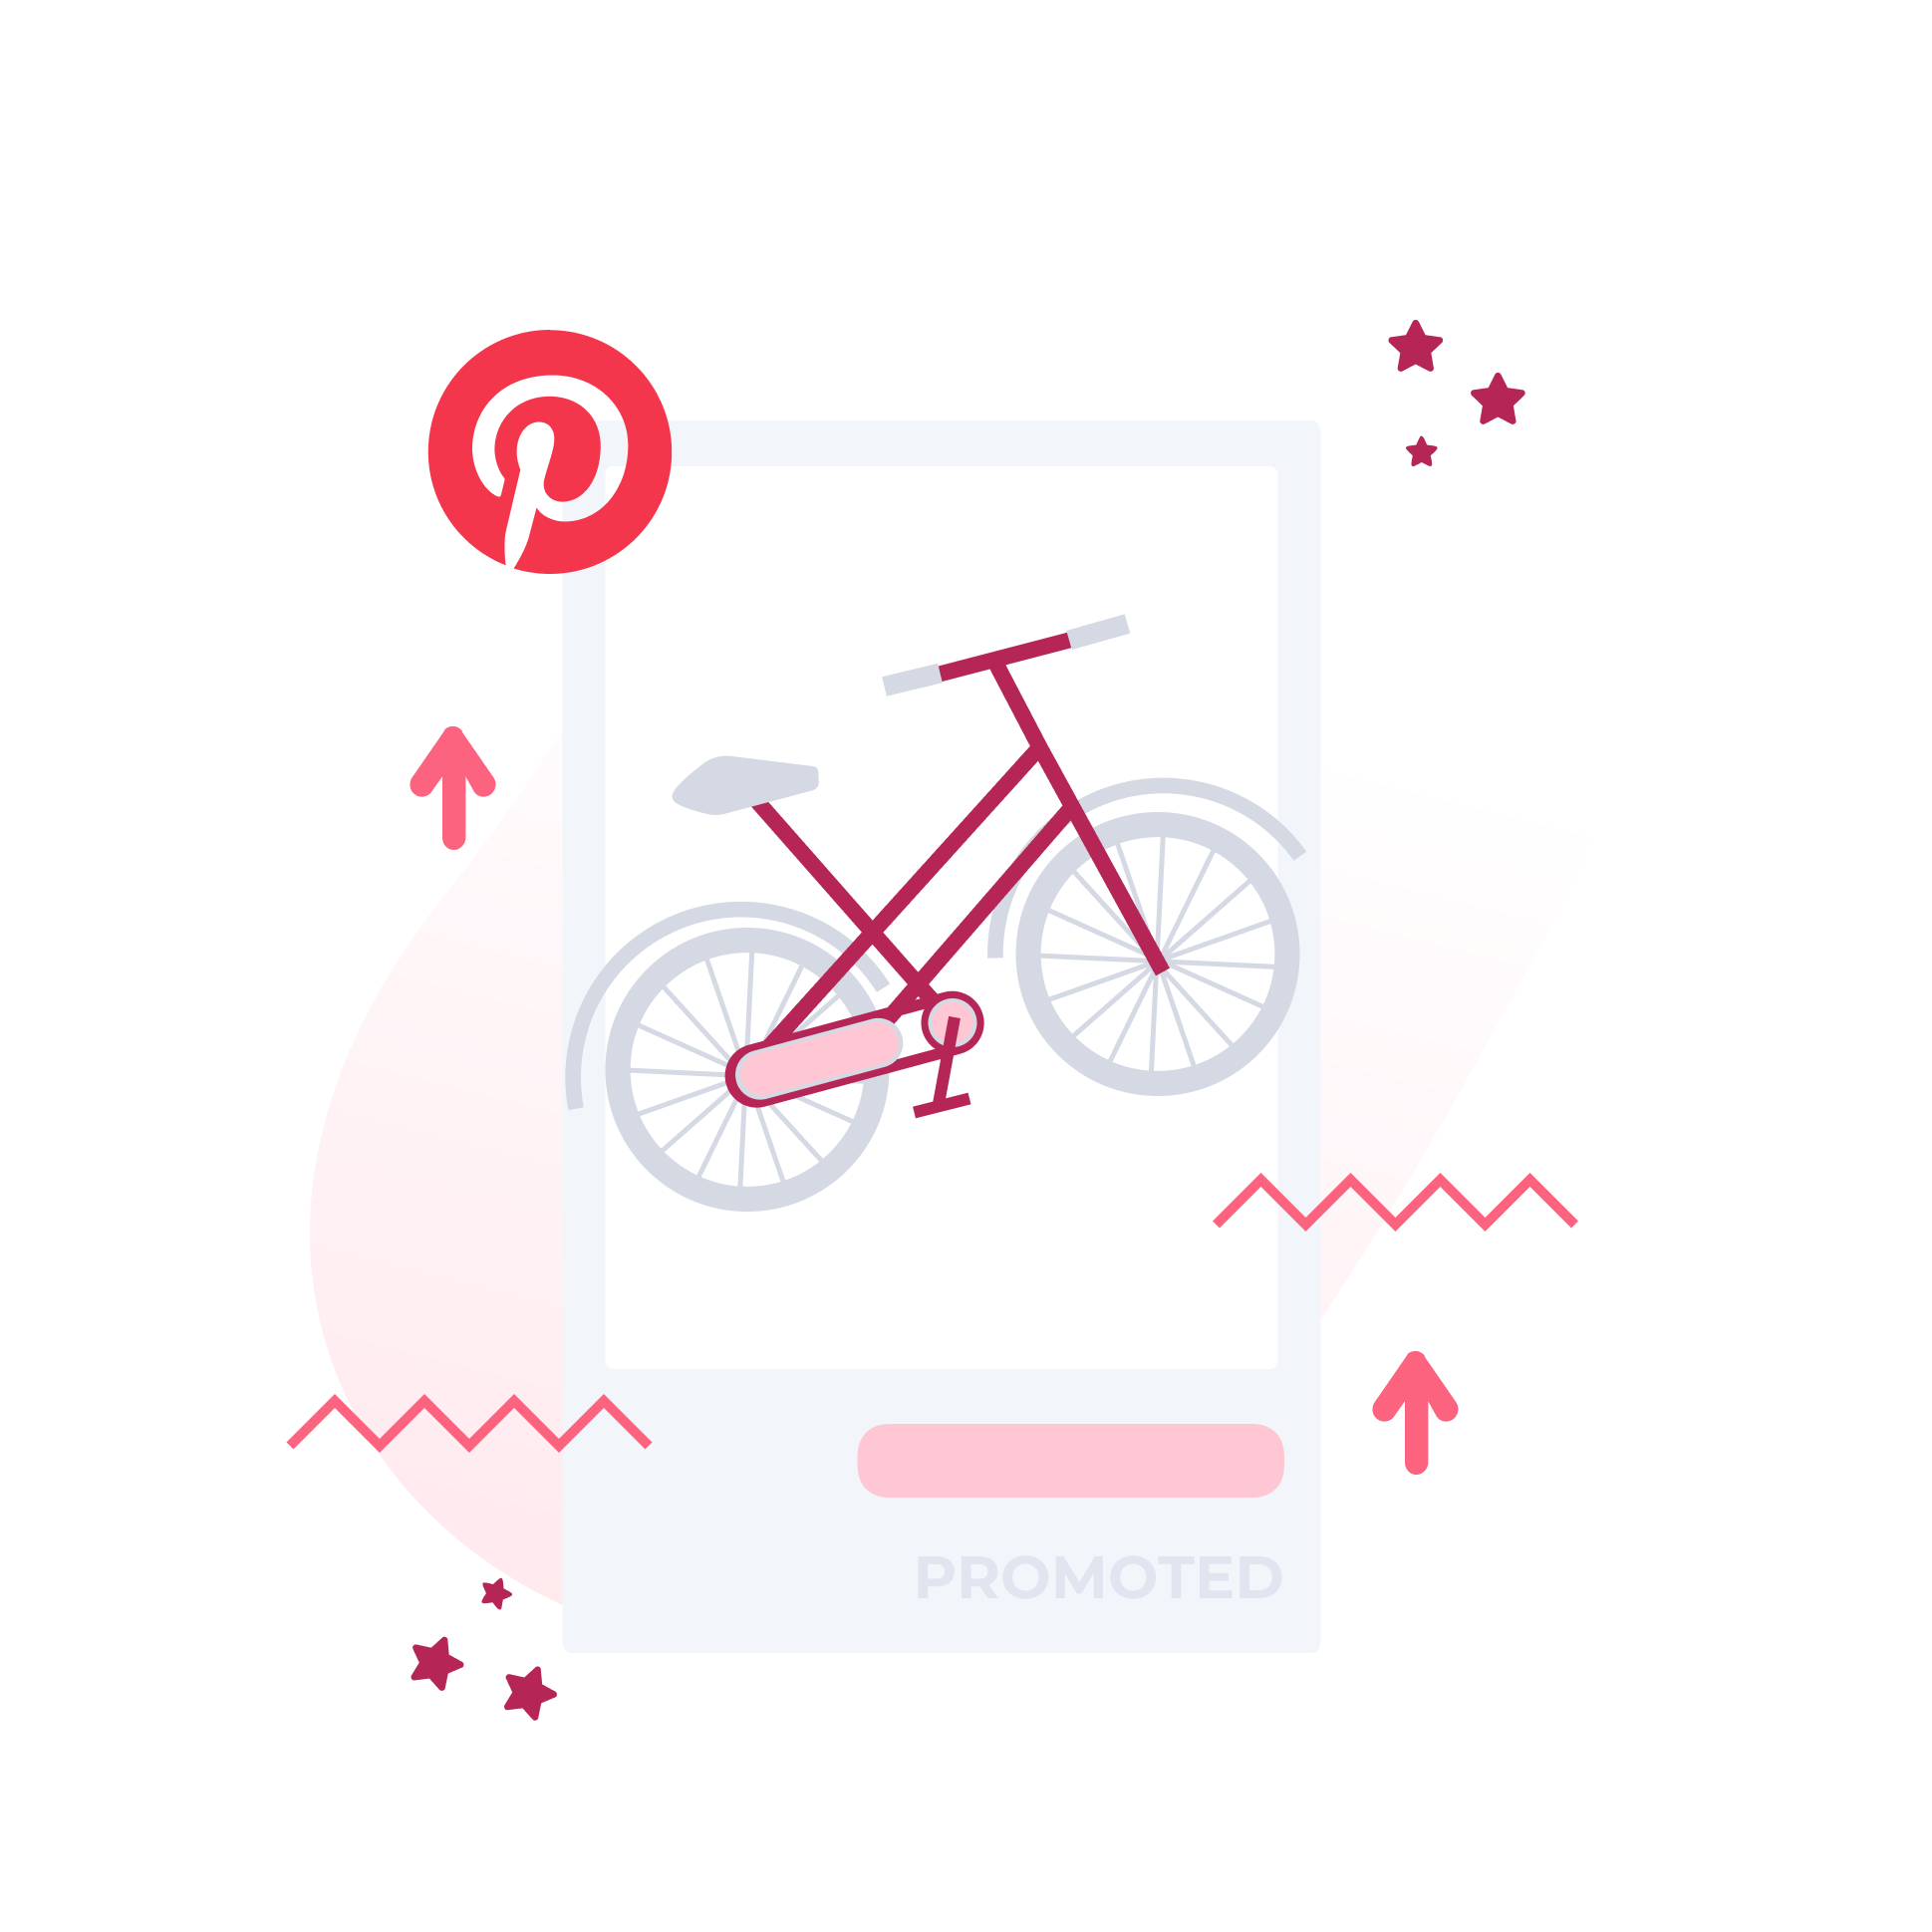 Bycicle on Pinterest UI